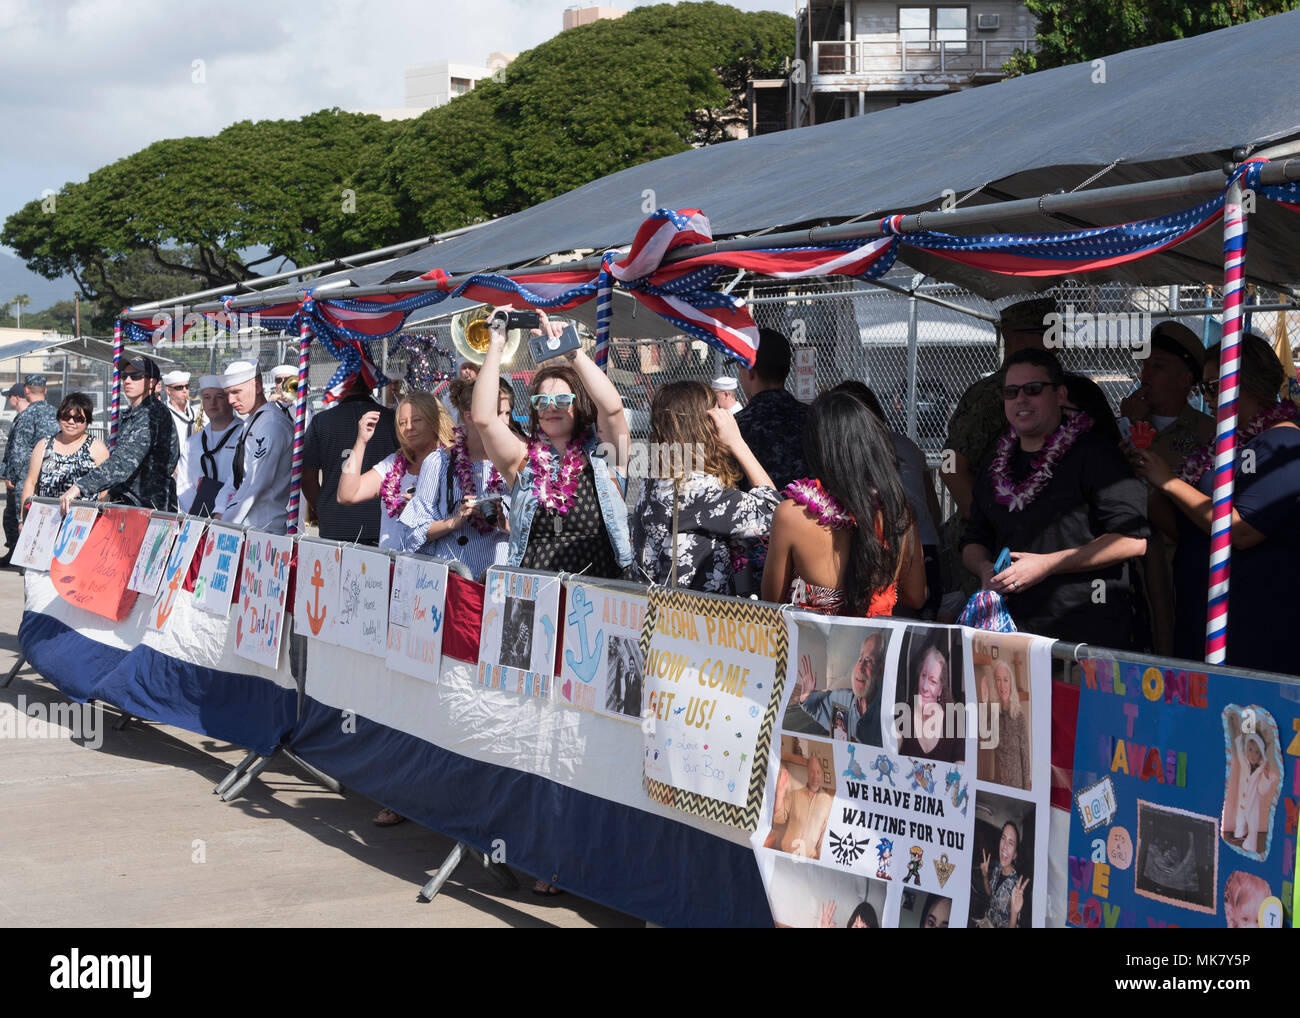 171122-N-KV911-0001 PEARL HARBOR (Nov. 22, 2017) Family members wait for their loved ones from the Virginia-class attack submarine USS Illinois (SSN 786) to arrive at Joint Base Pearl Harbor-Hickam following a change of homeport from Groton, Connecticut, Nov. 22. USS Illinois is the 13th Virginia-class nuclear submarine and the 5th Virginia-class submarine homeported in Pearl Harbor. (U.S. Navy Photo by Mass Communication Specialist 2nd Class Shaun Griffin/Released) - Stock Image